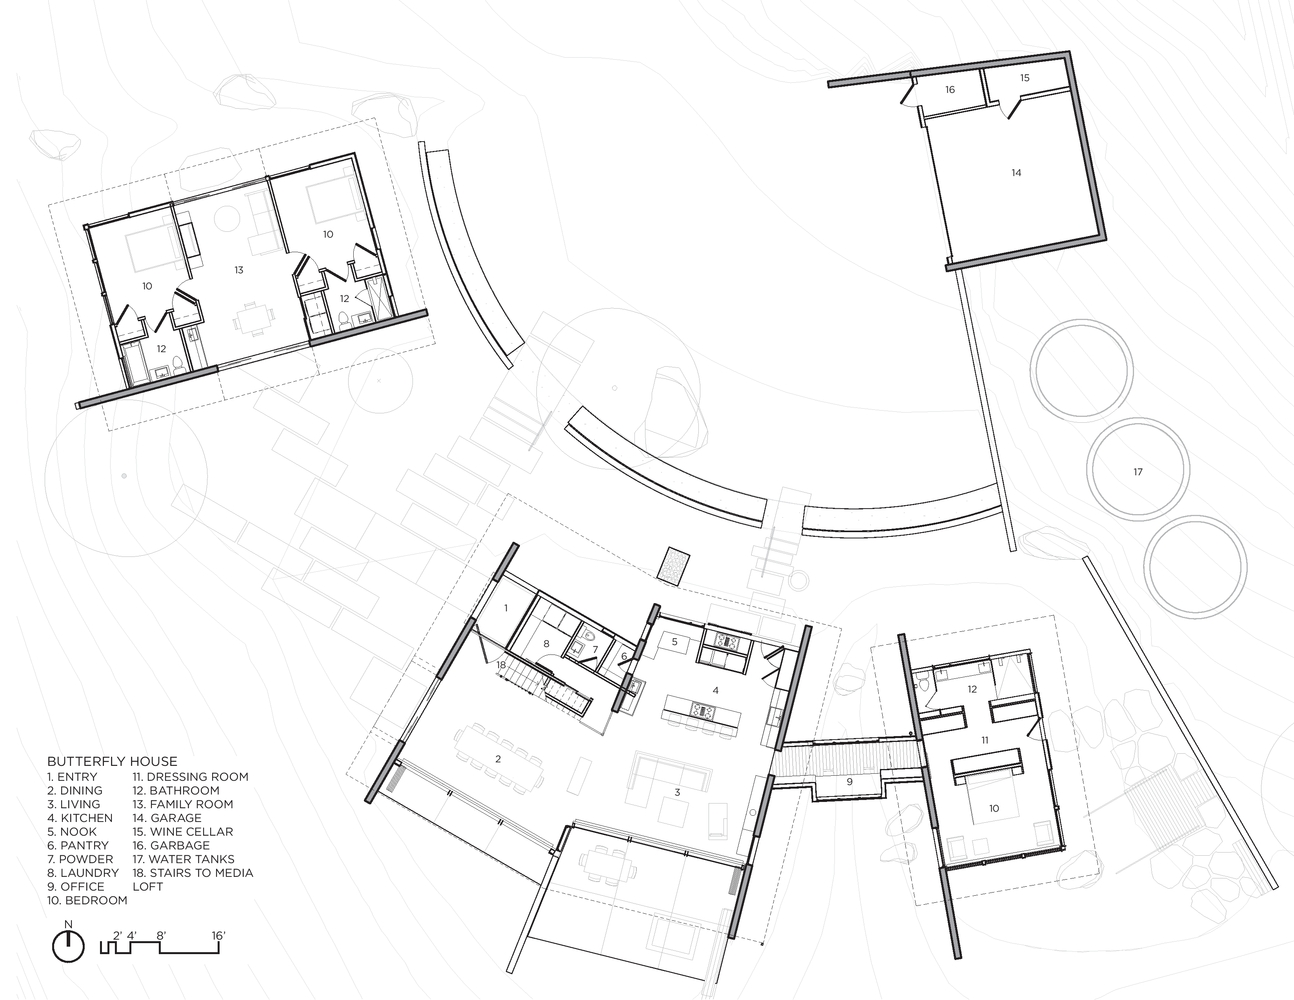 Butterfly_House_Plans_0001.jpg